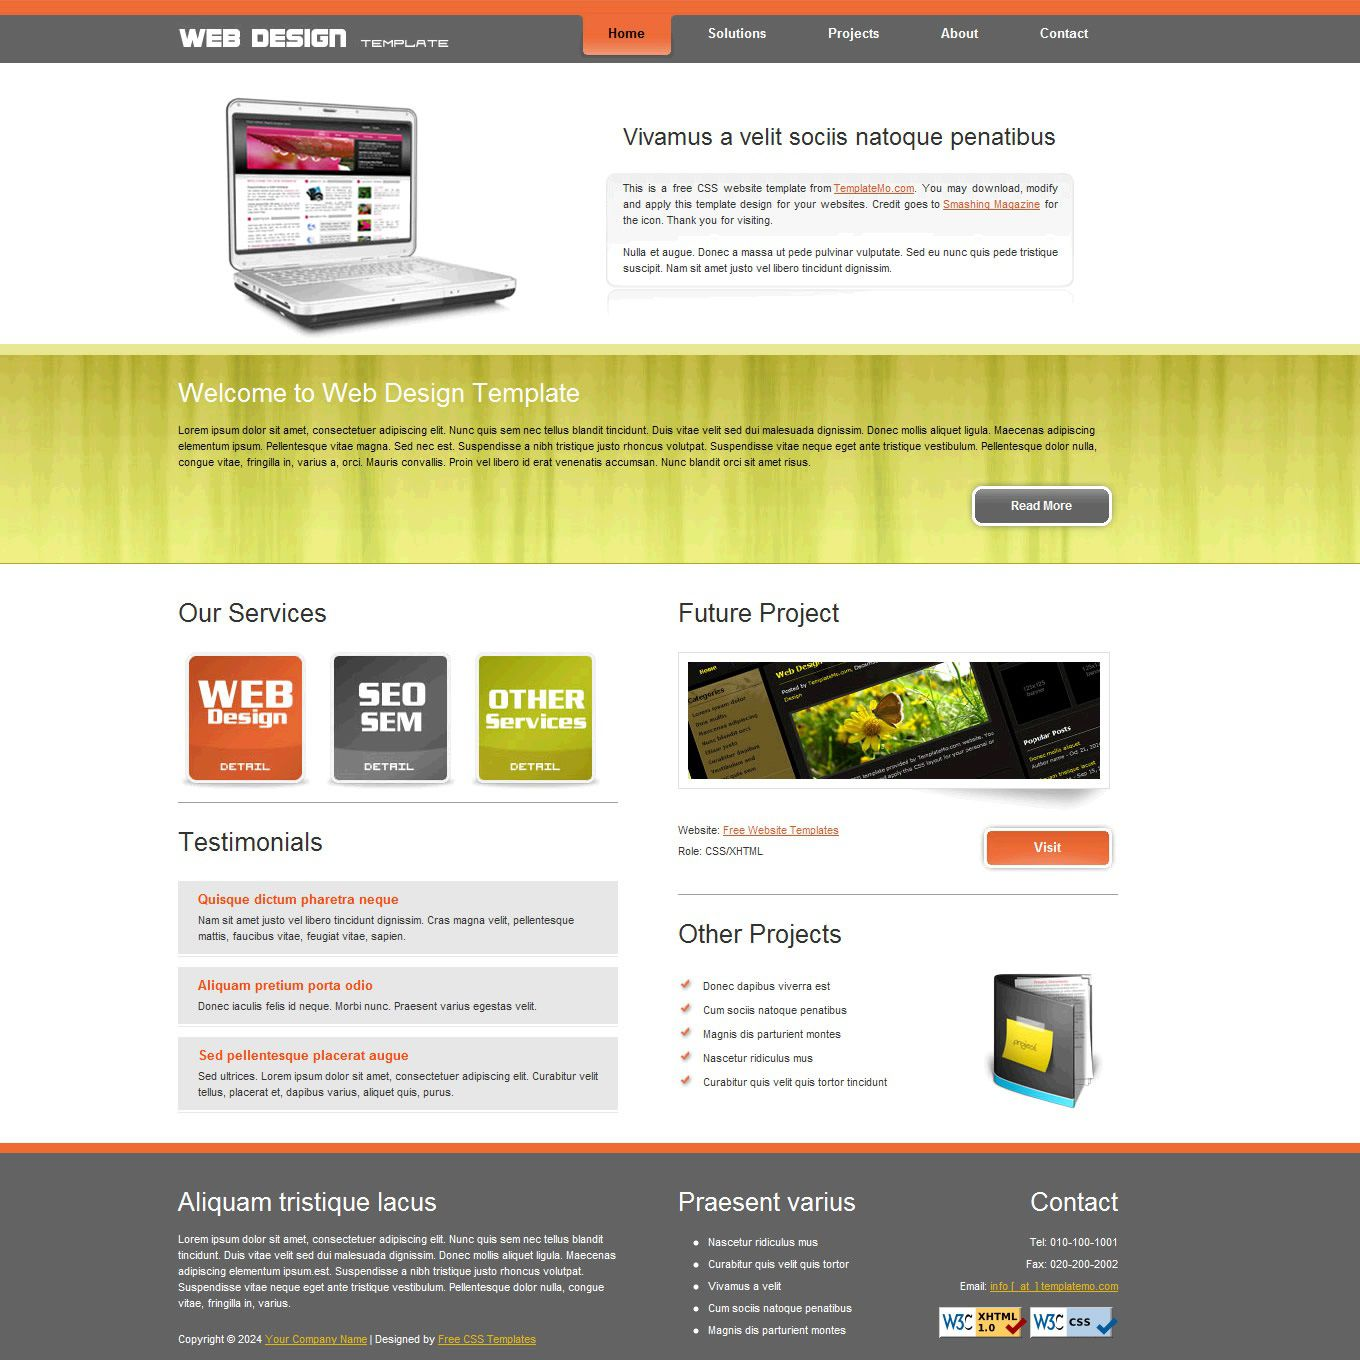 006 Marvelou Website Design Template Free Picture  Asp.net Web Download PsdFull